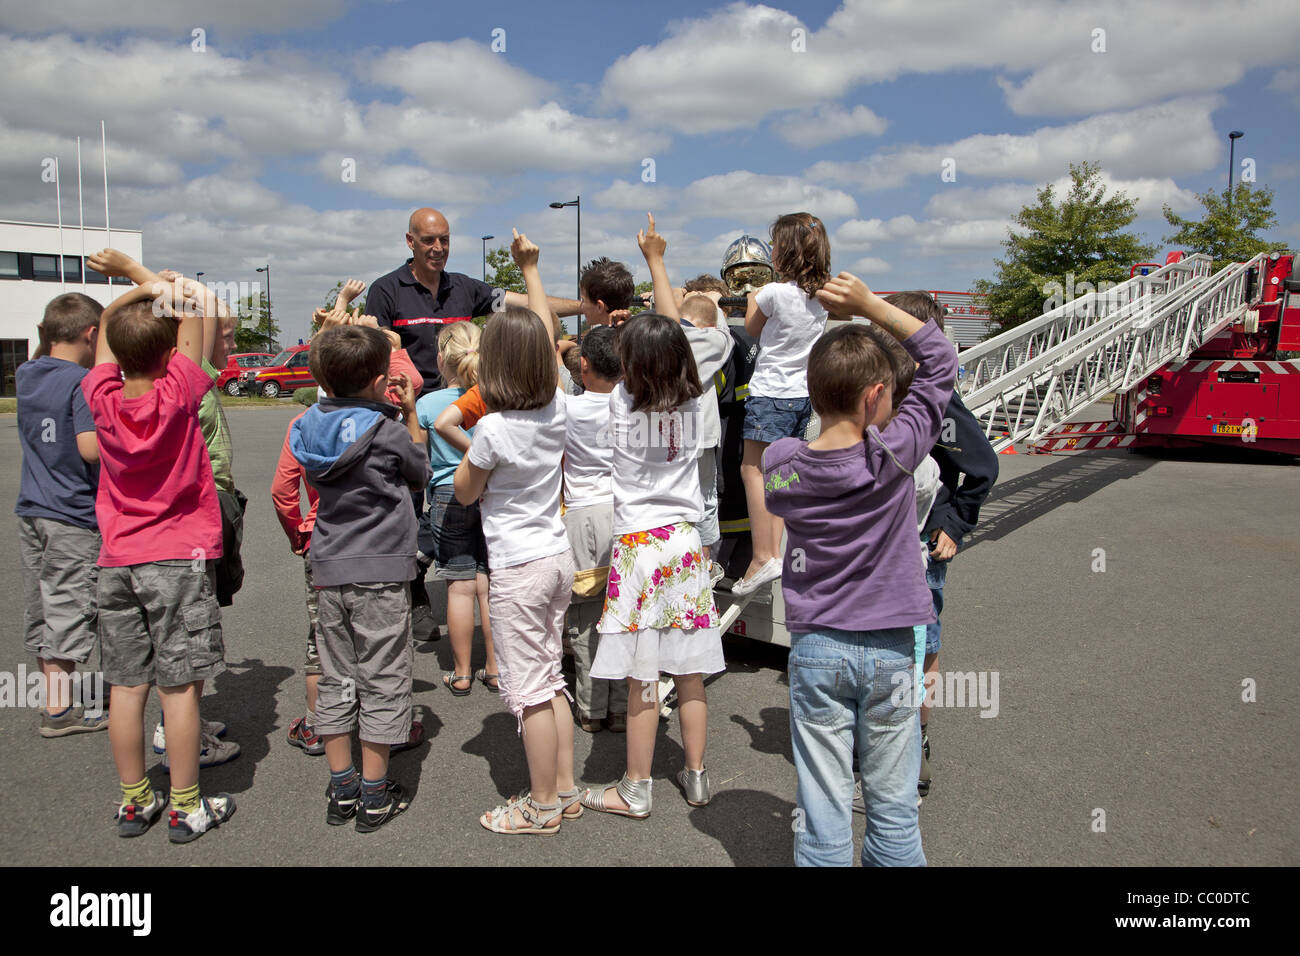 SCHOOL TRIP OF PRIMARY SCHOOLCHILDREN AT A FIREHOUSE, FIRE DEPARTMENT OF AURAY, MORBIHAN (56), FRANCE - Stock Image